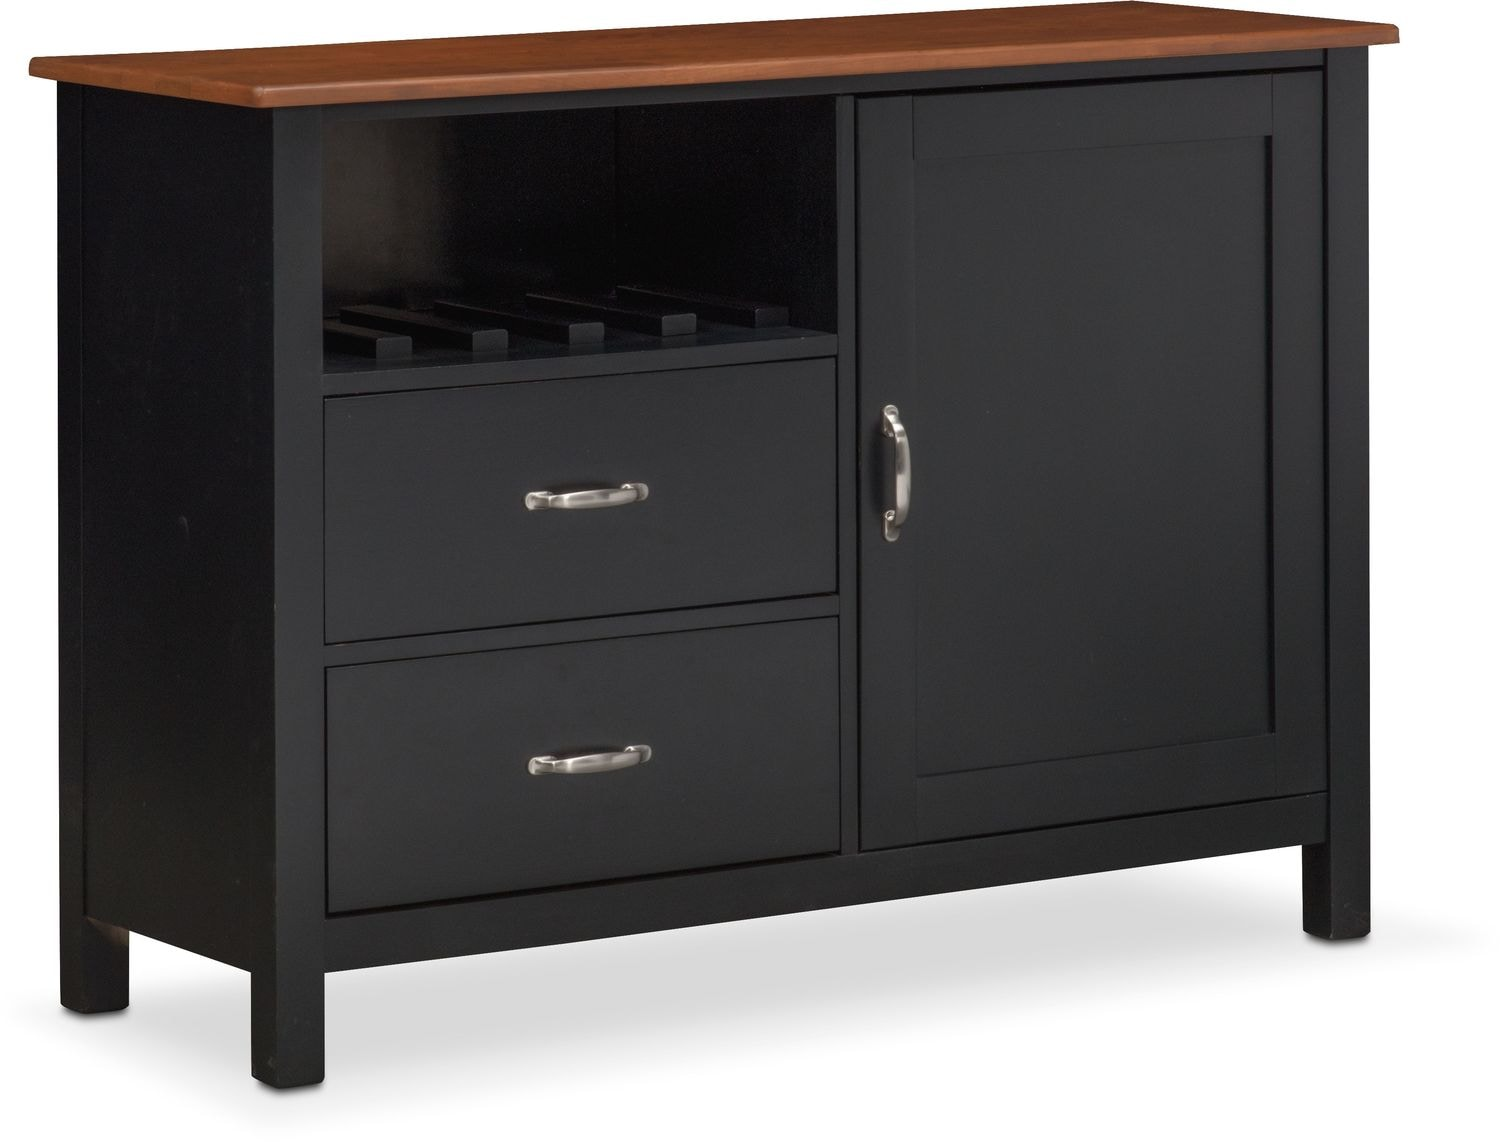 Click to change image. - Nantucket Sideboard - Black And Cherry Value City Furniture